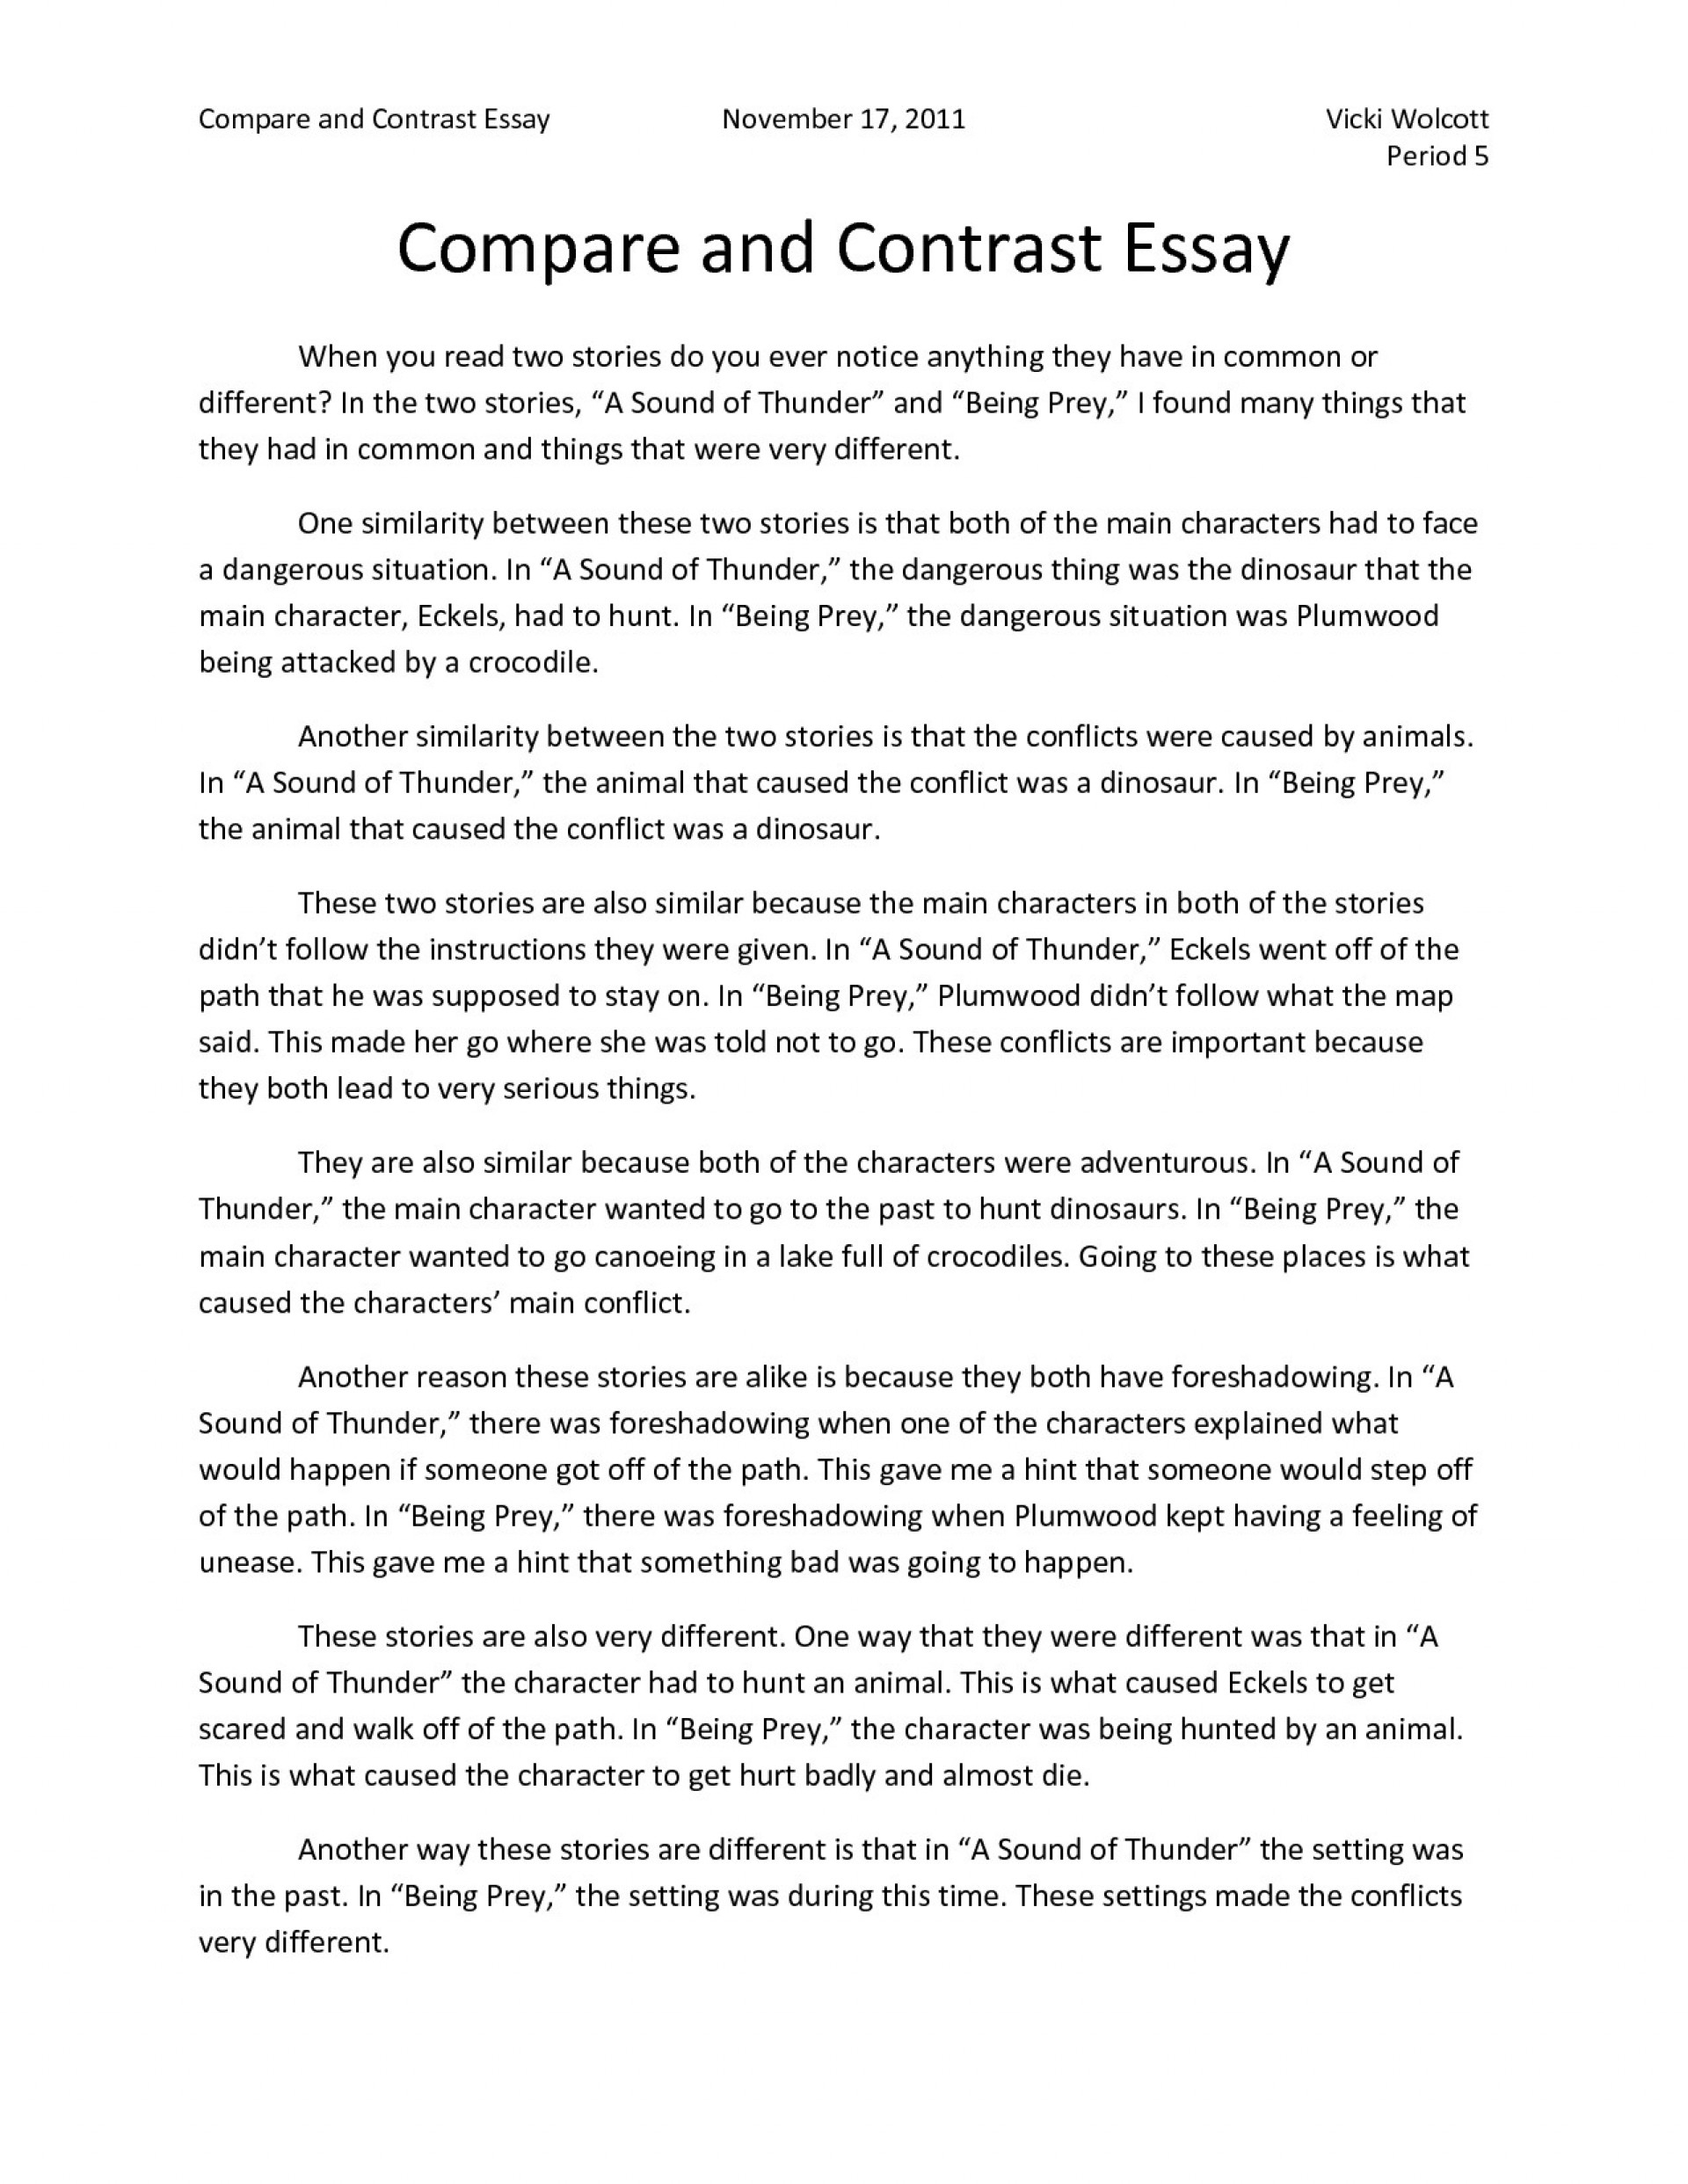 006 Essay Example Compare Contrast An Of And Comparison Ideas Fascinating Topics Graphic Organizer Julius Caesar Answers High School 1920